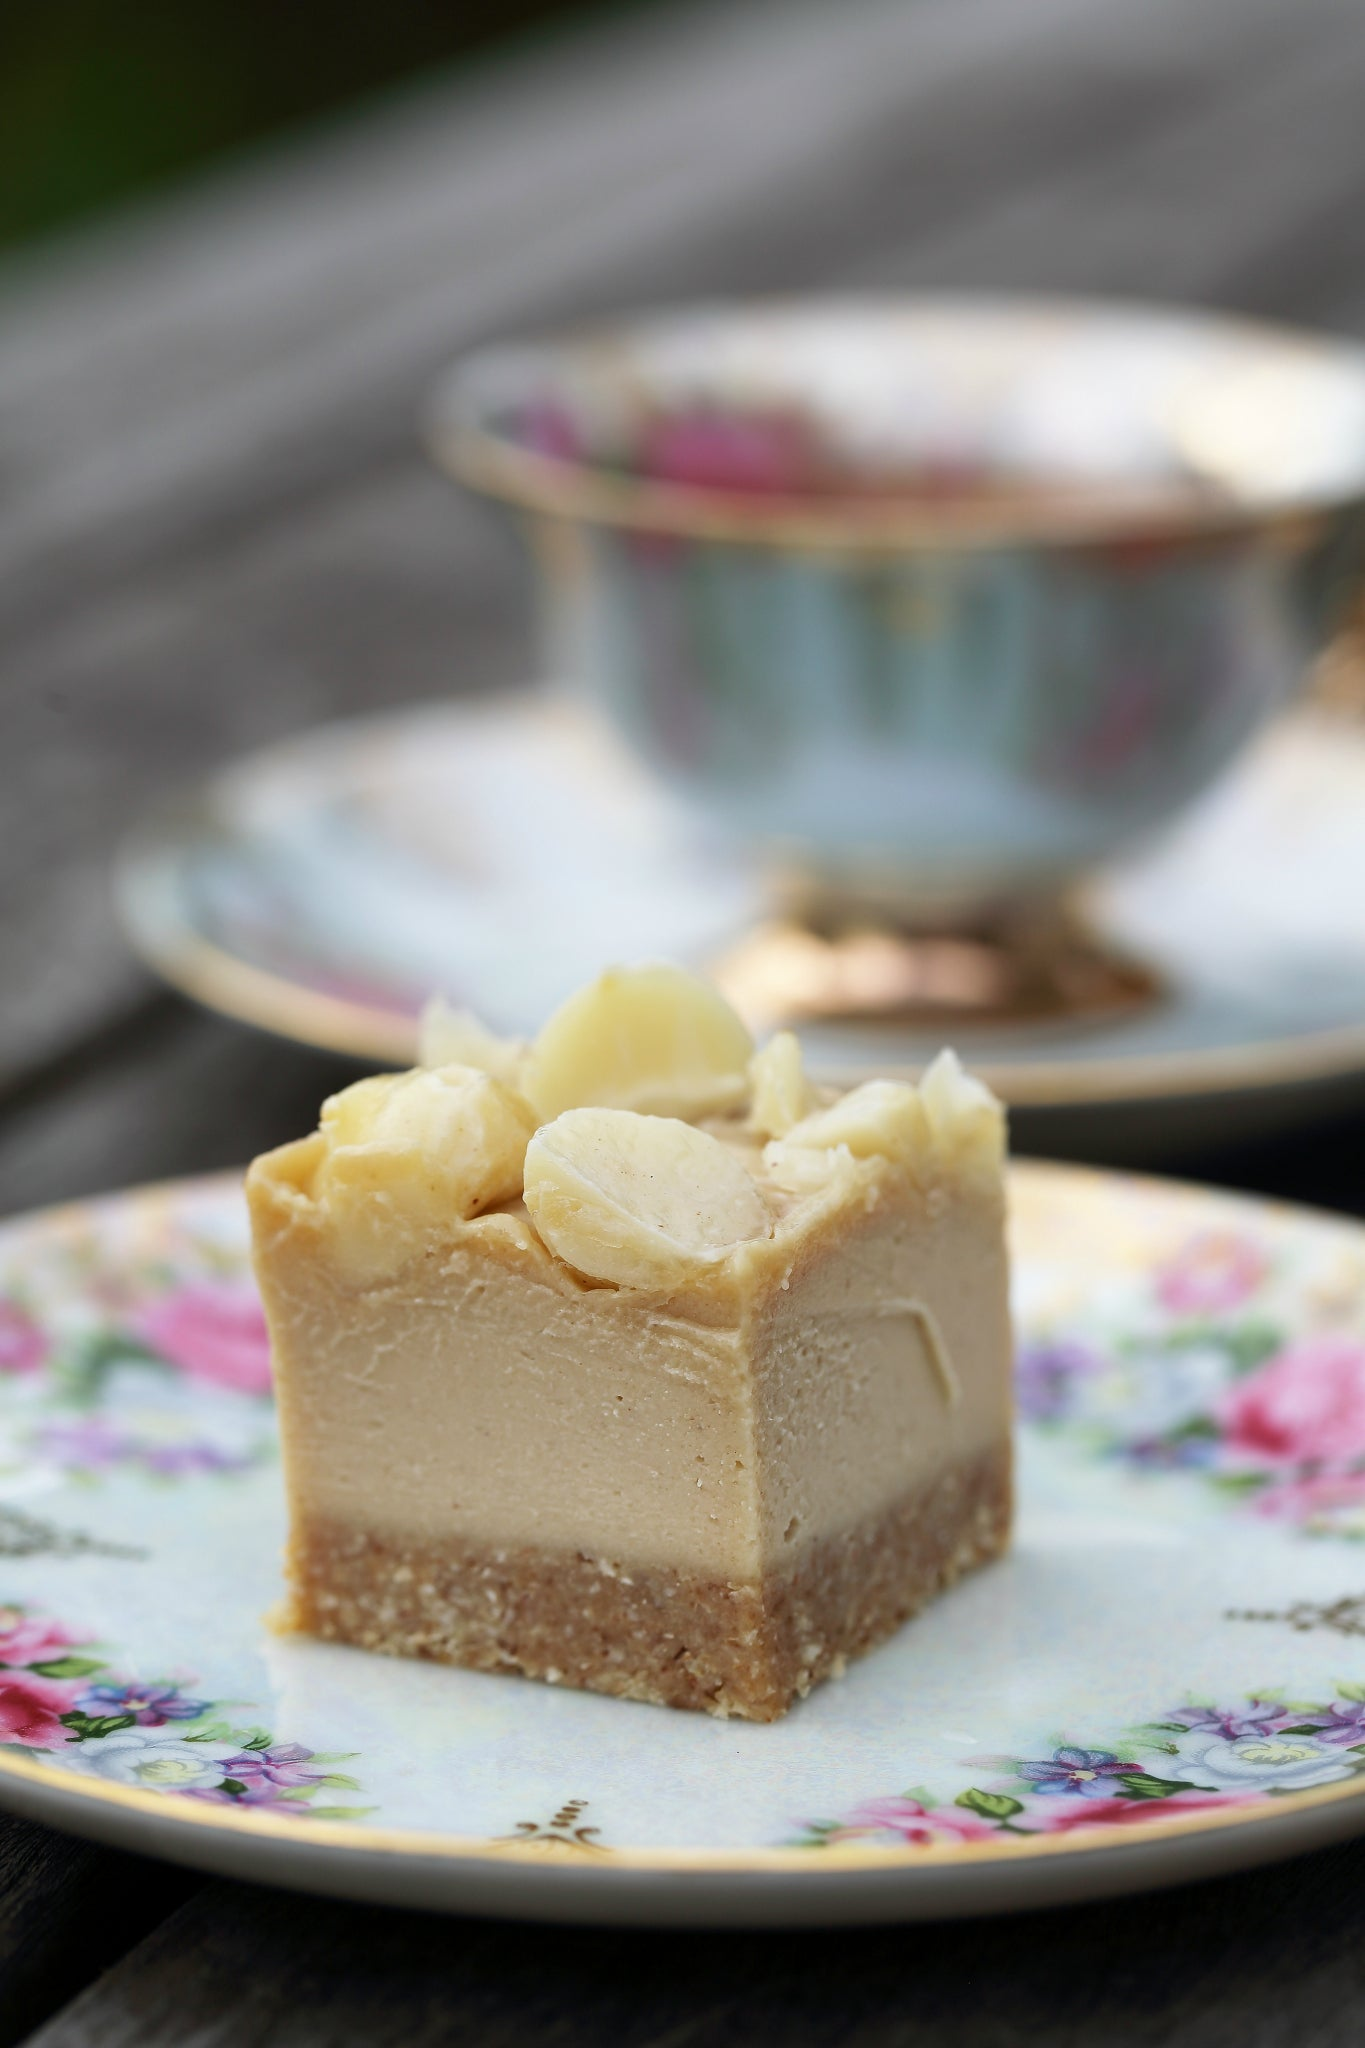 Salted caramel macadamia slice be good organics salted caramel macadamia slice with youtube video healthy raw dessert sweet treat forumfinder